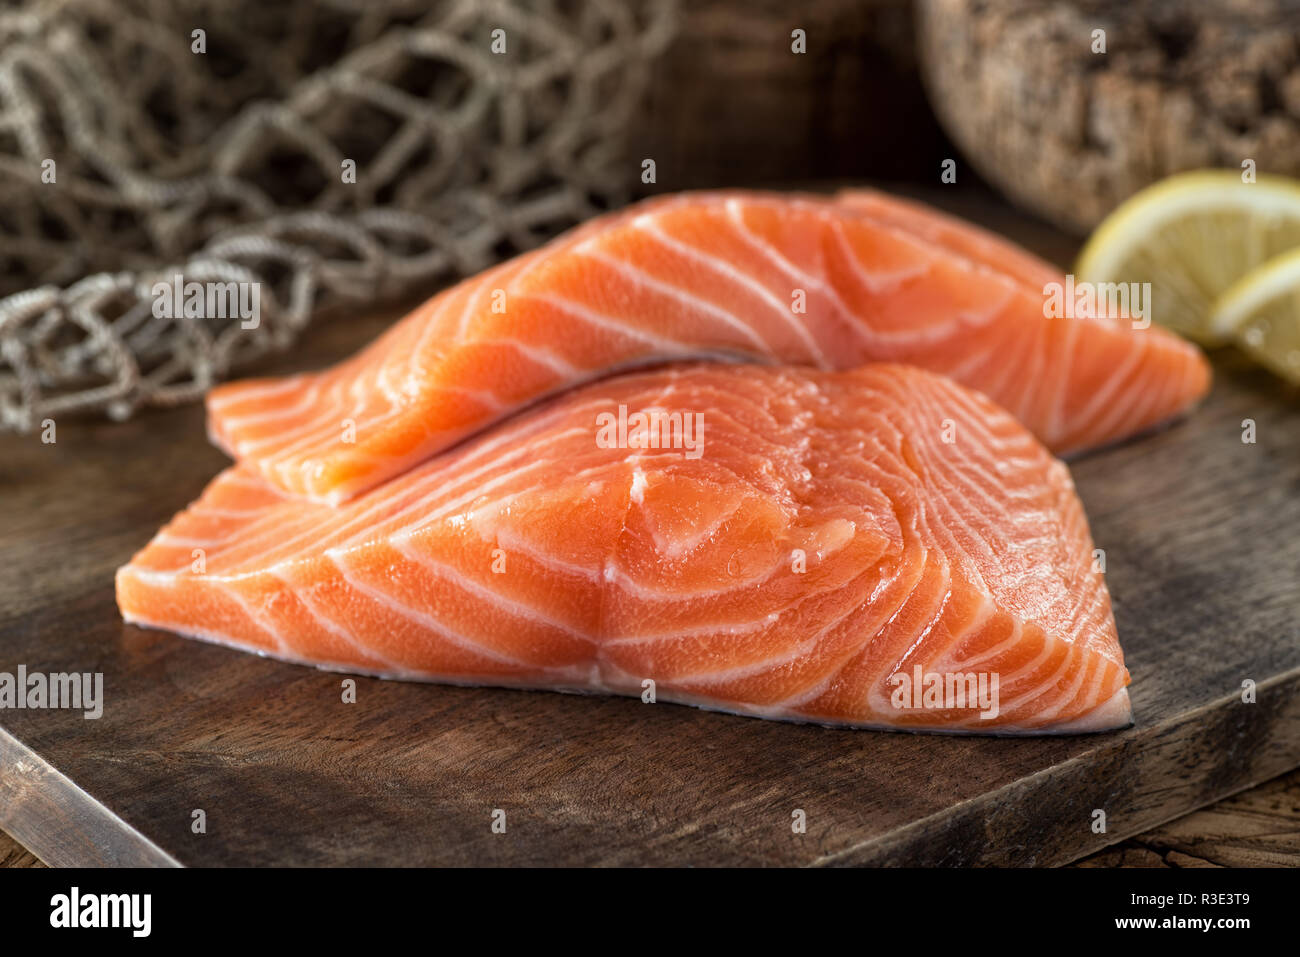 Fresh raw salmon fillets on a wooden board with lemon and fish net background. - Stock Image